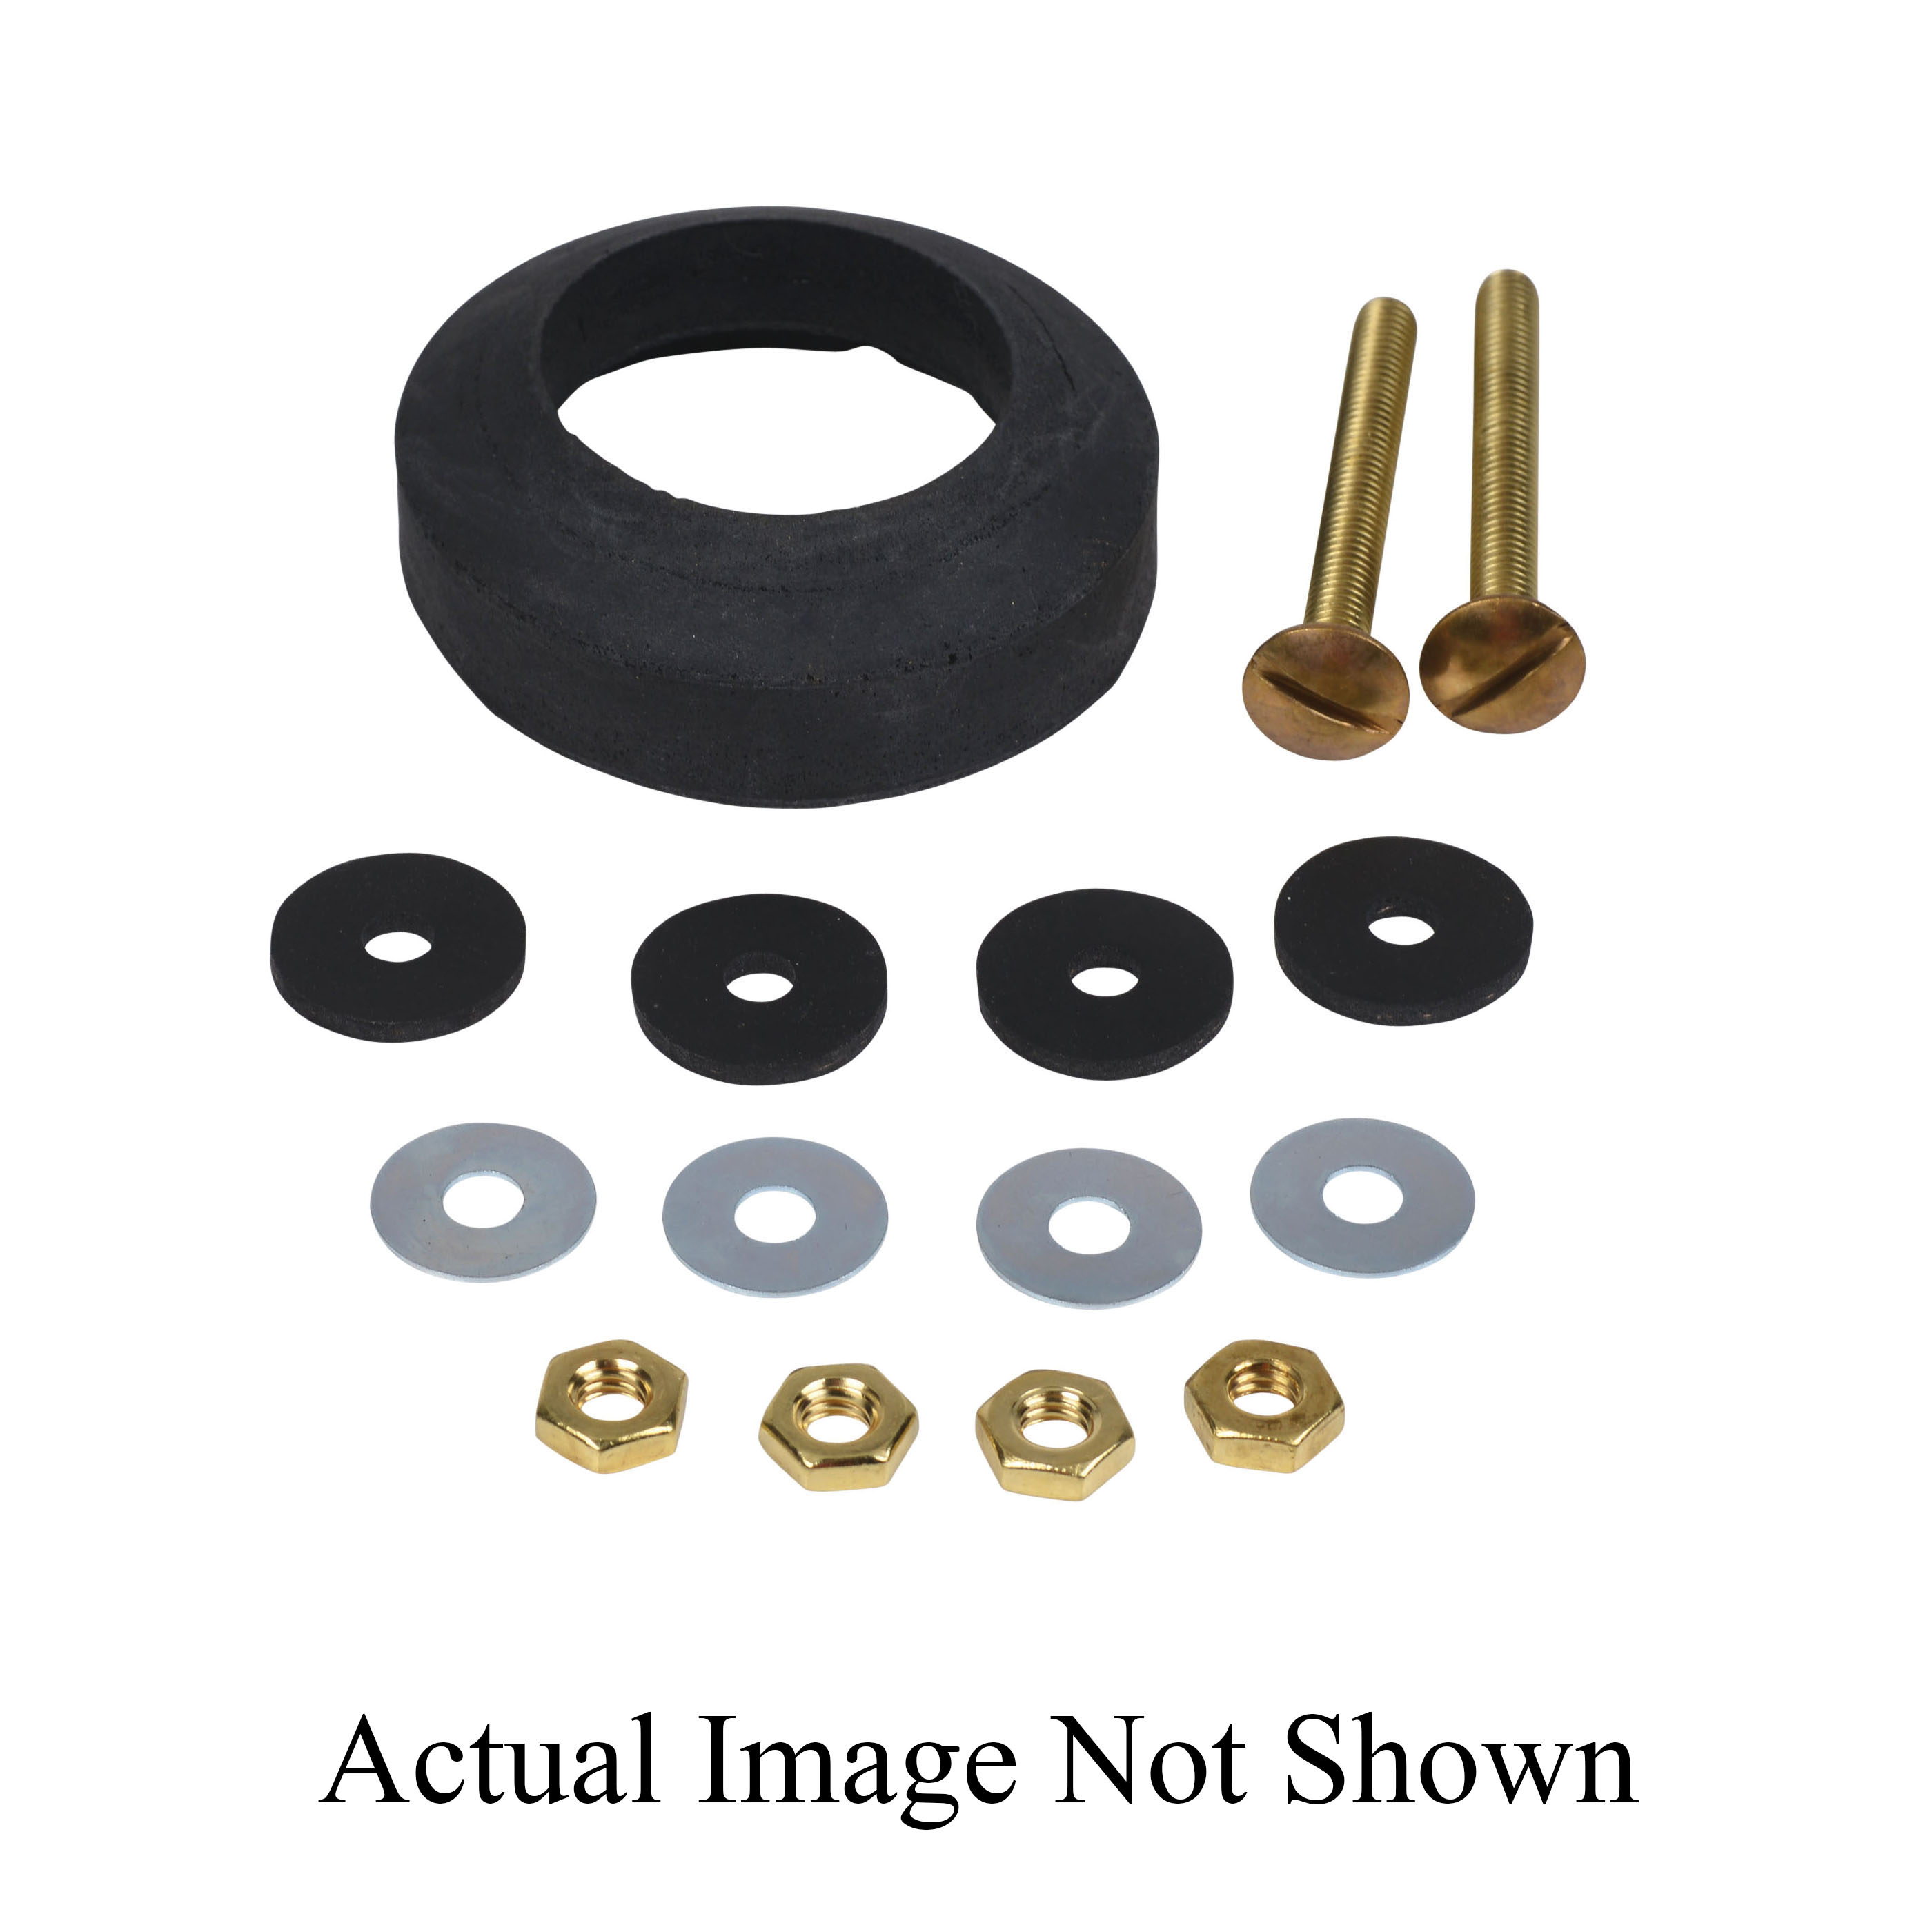 Harvey® 072035 Double Thick Tank-to-Bowl Gasket Kit With Hex Recess and Bolt Kit, For Use With 3 and 4 in Waste Lines, Sponge Rubber